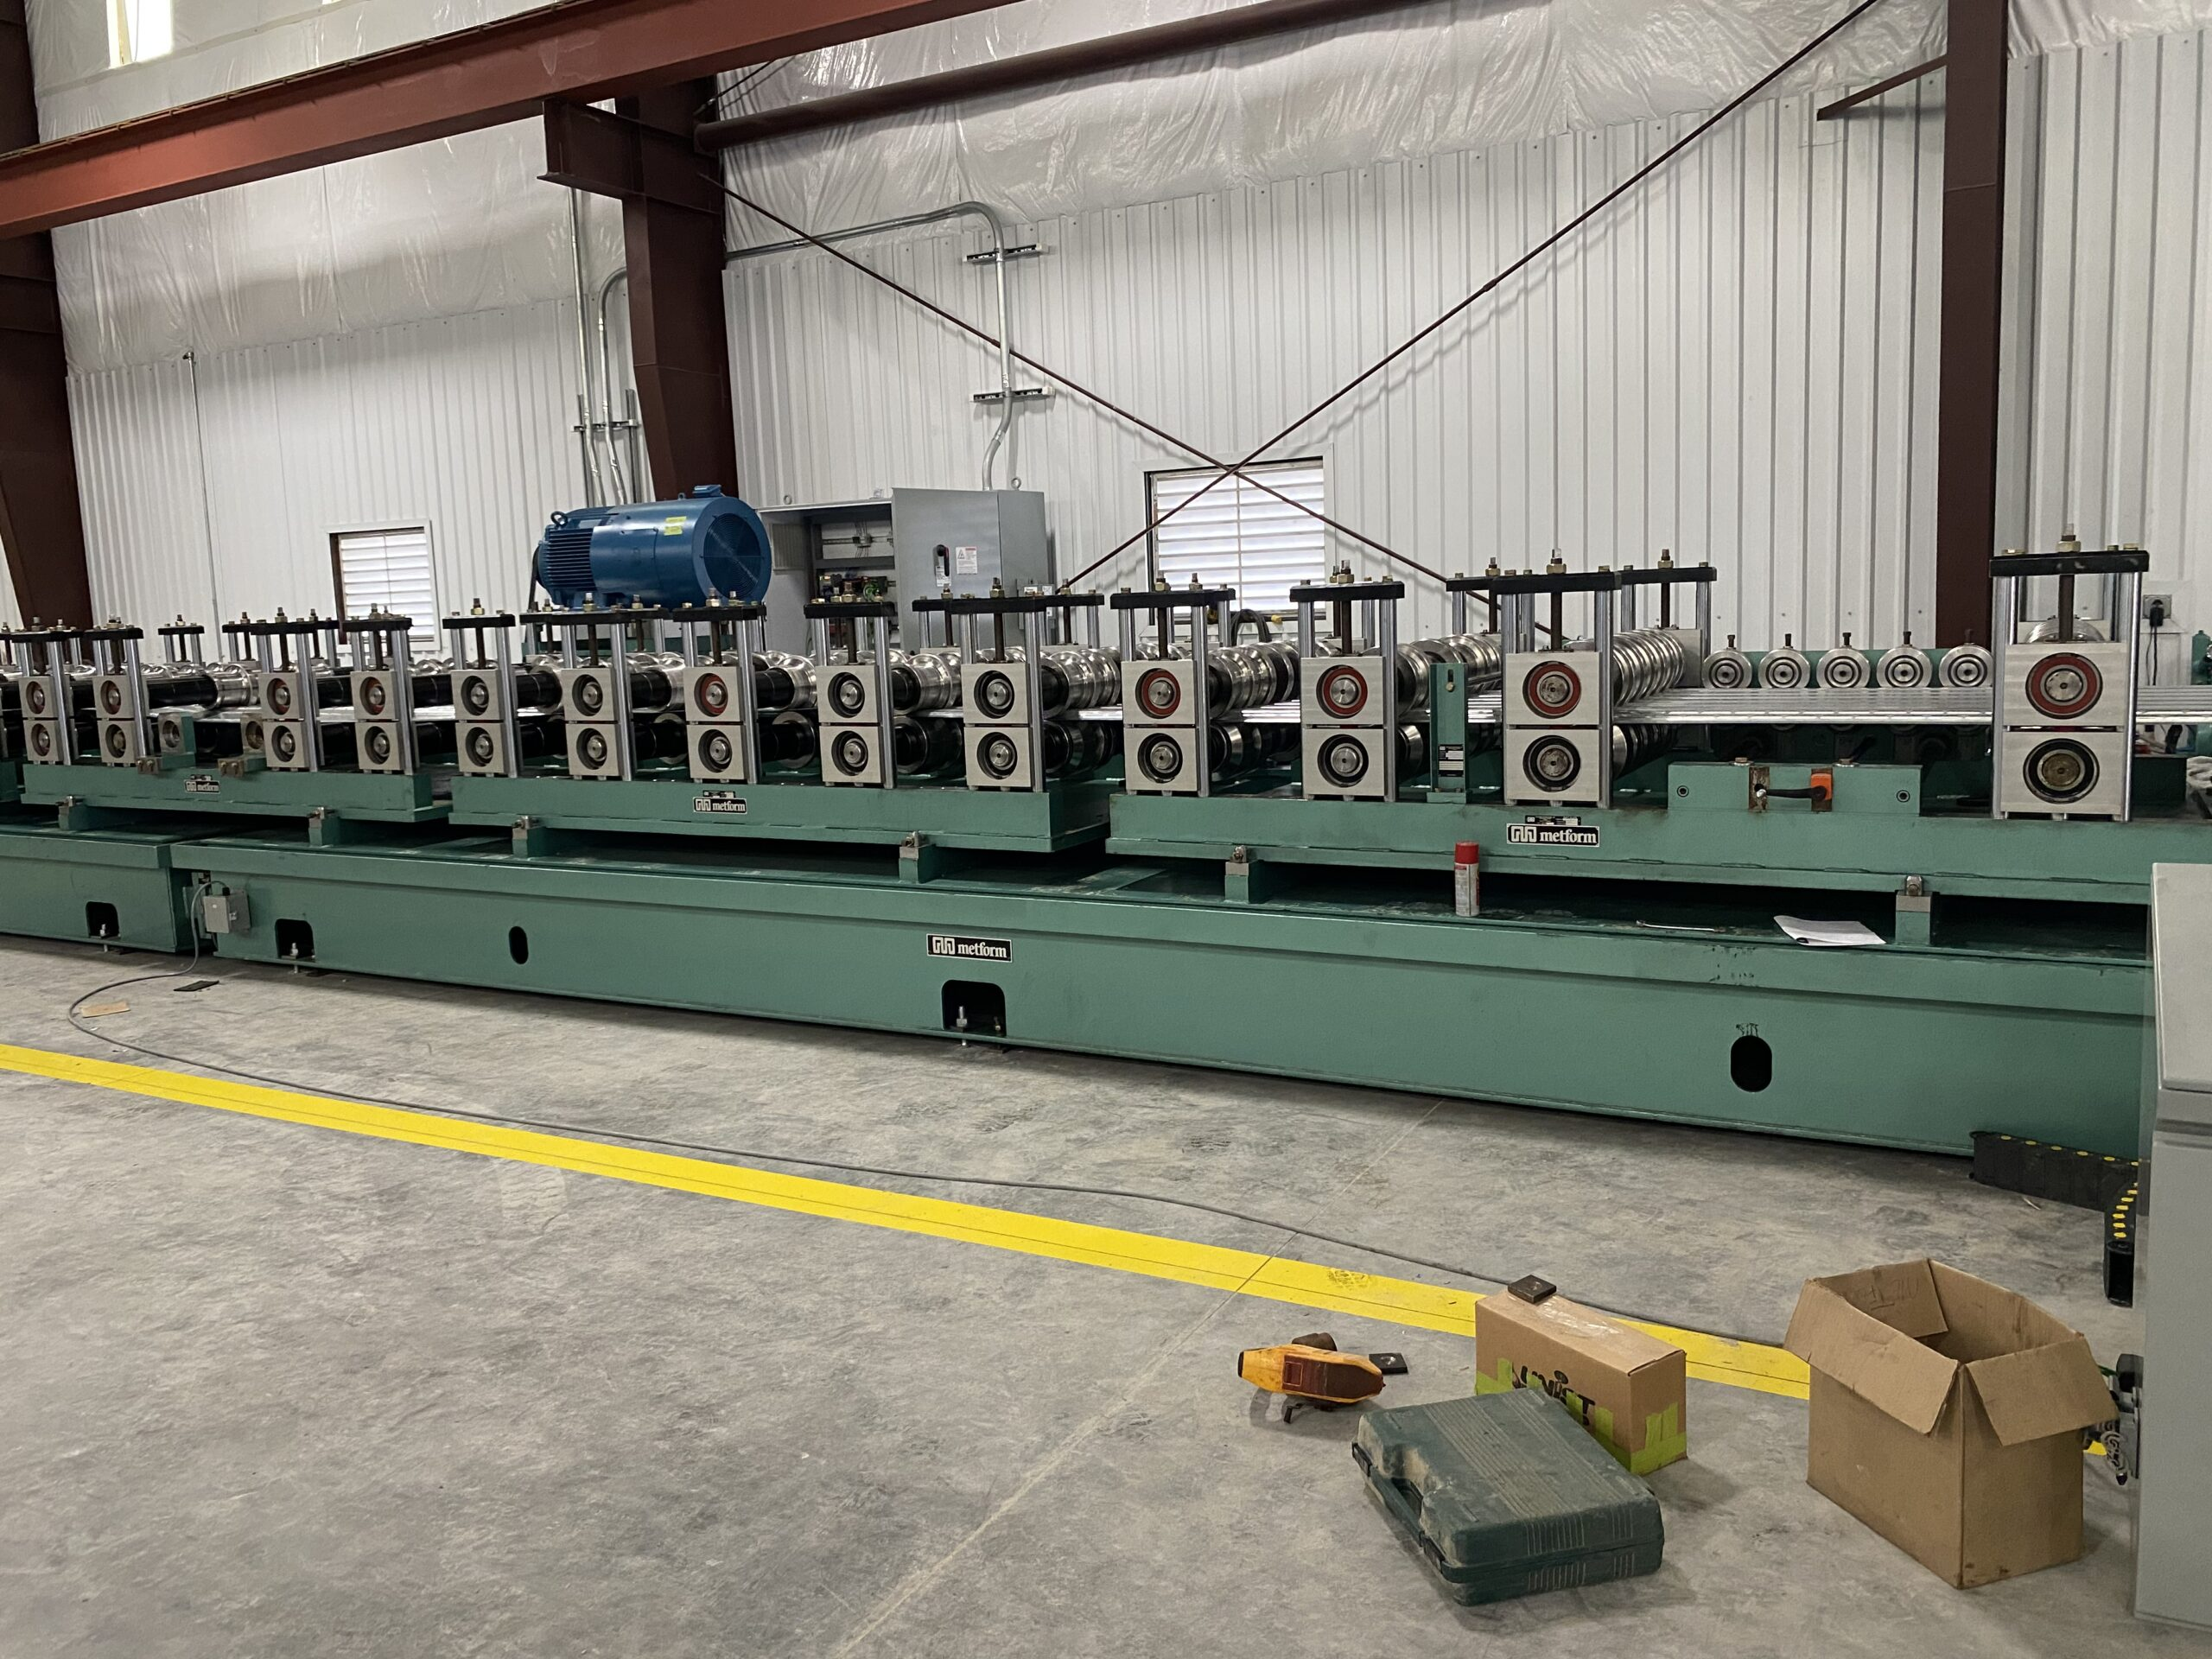 new deck mill at CSM manufacturing facility